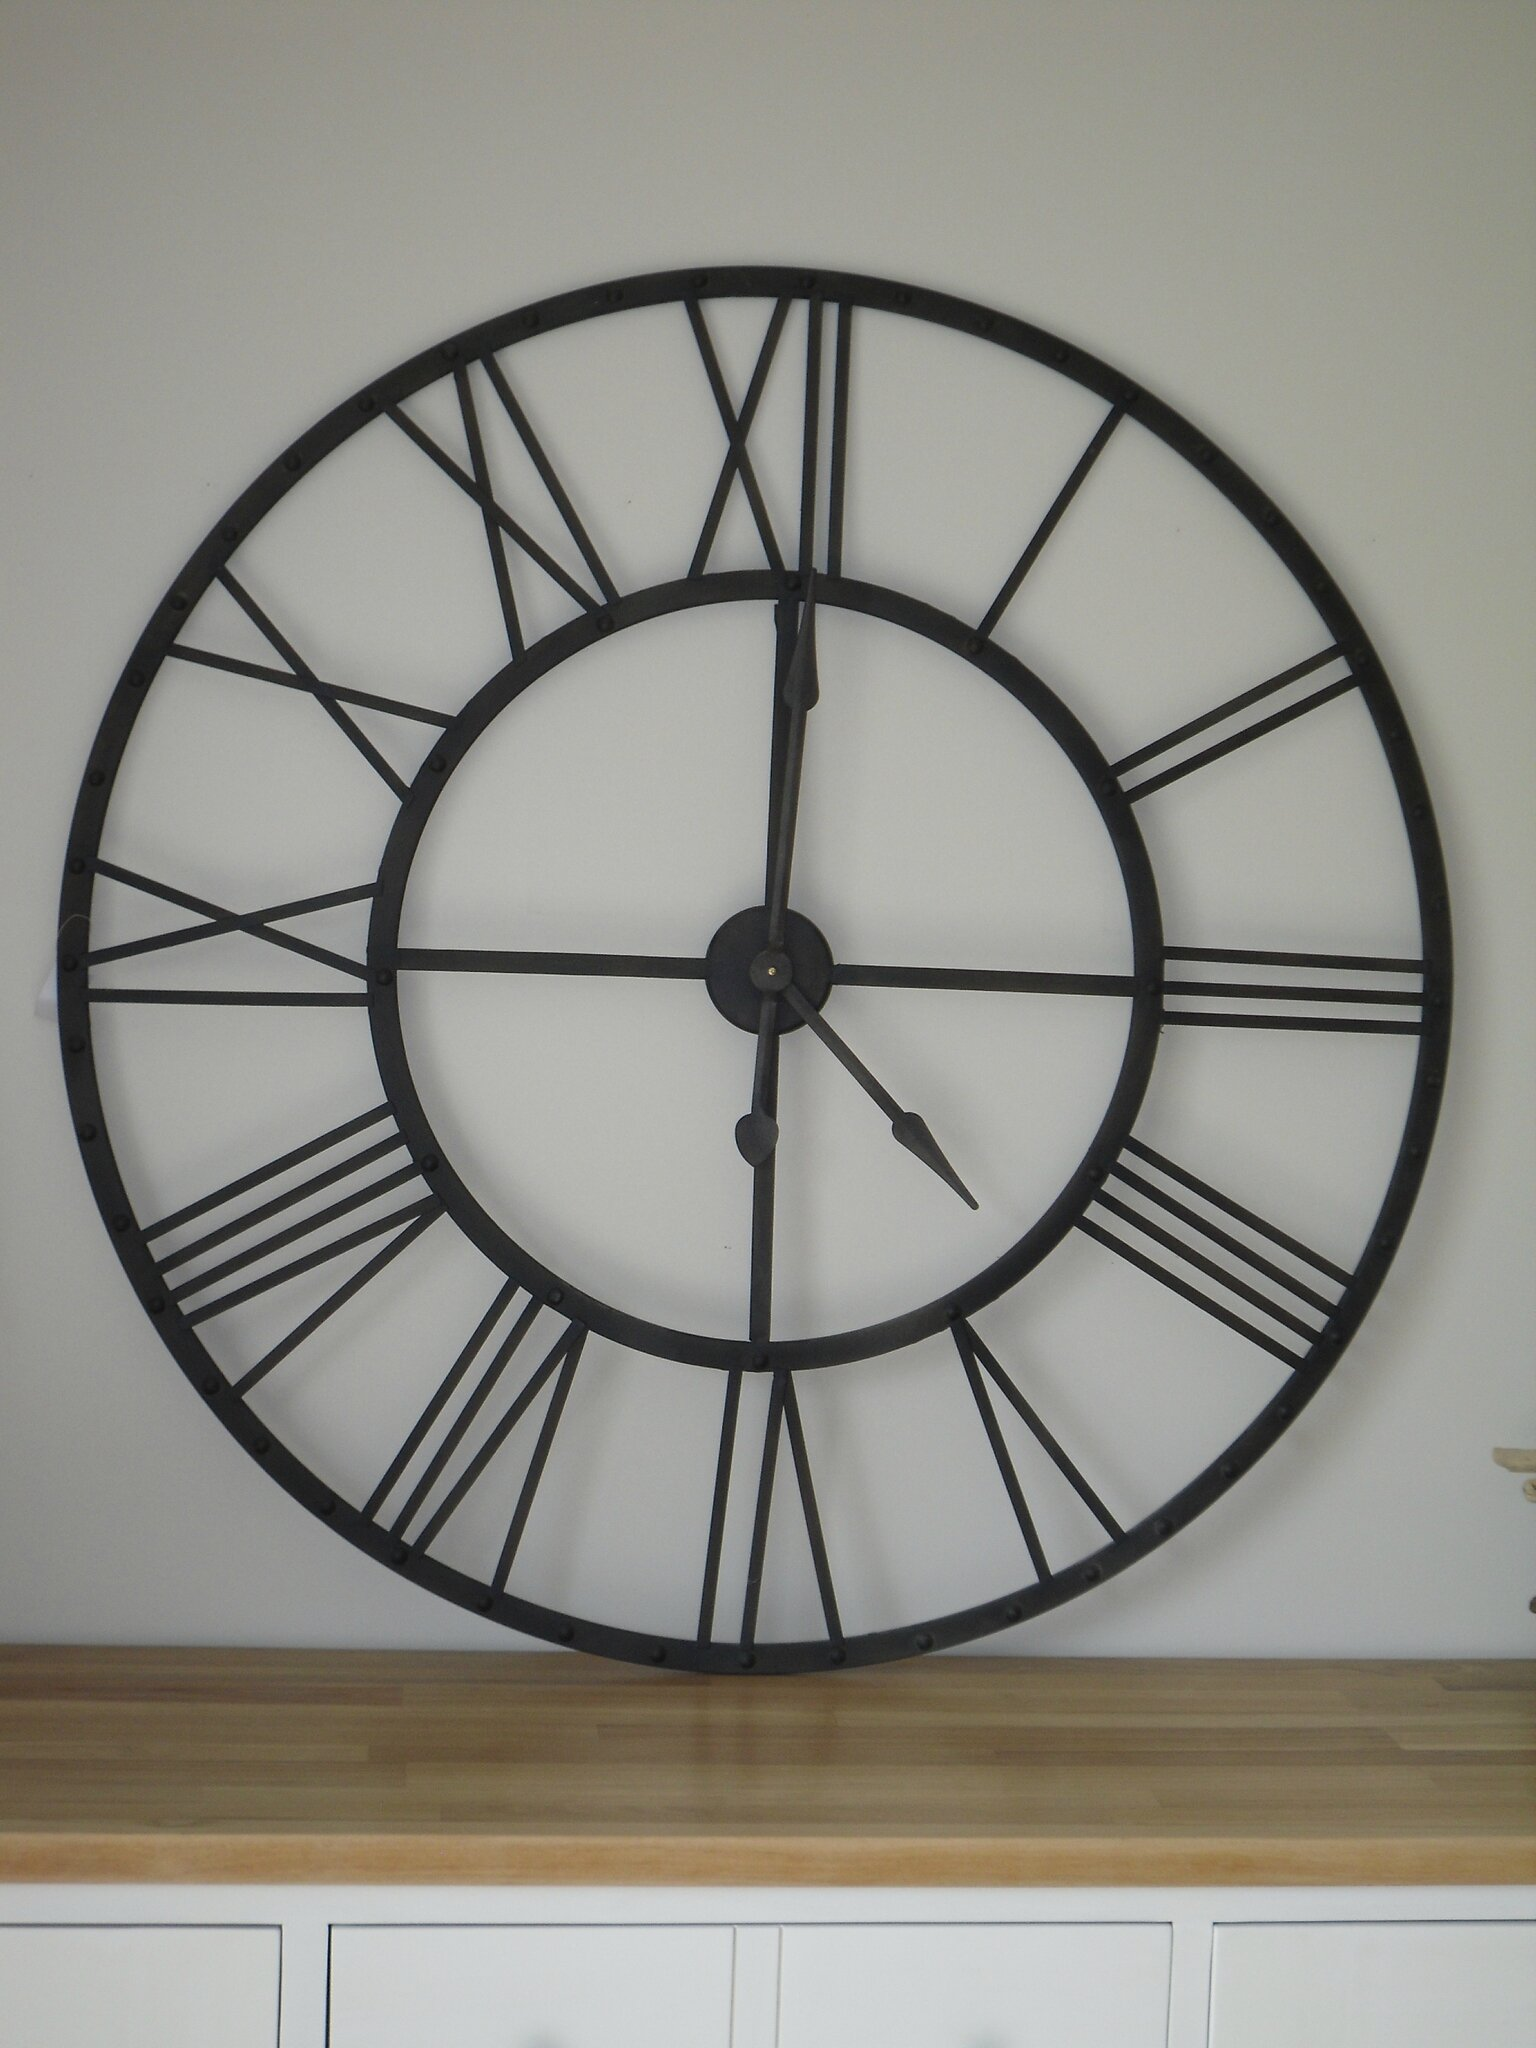 horloge indus maisons du monde 4 photo de d co broc et patine le grenier de sara. Black Bedroom Furniture Sets. Home Design Ideas